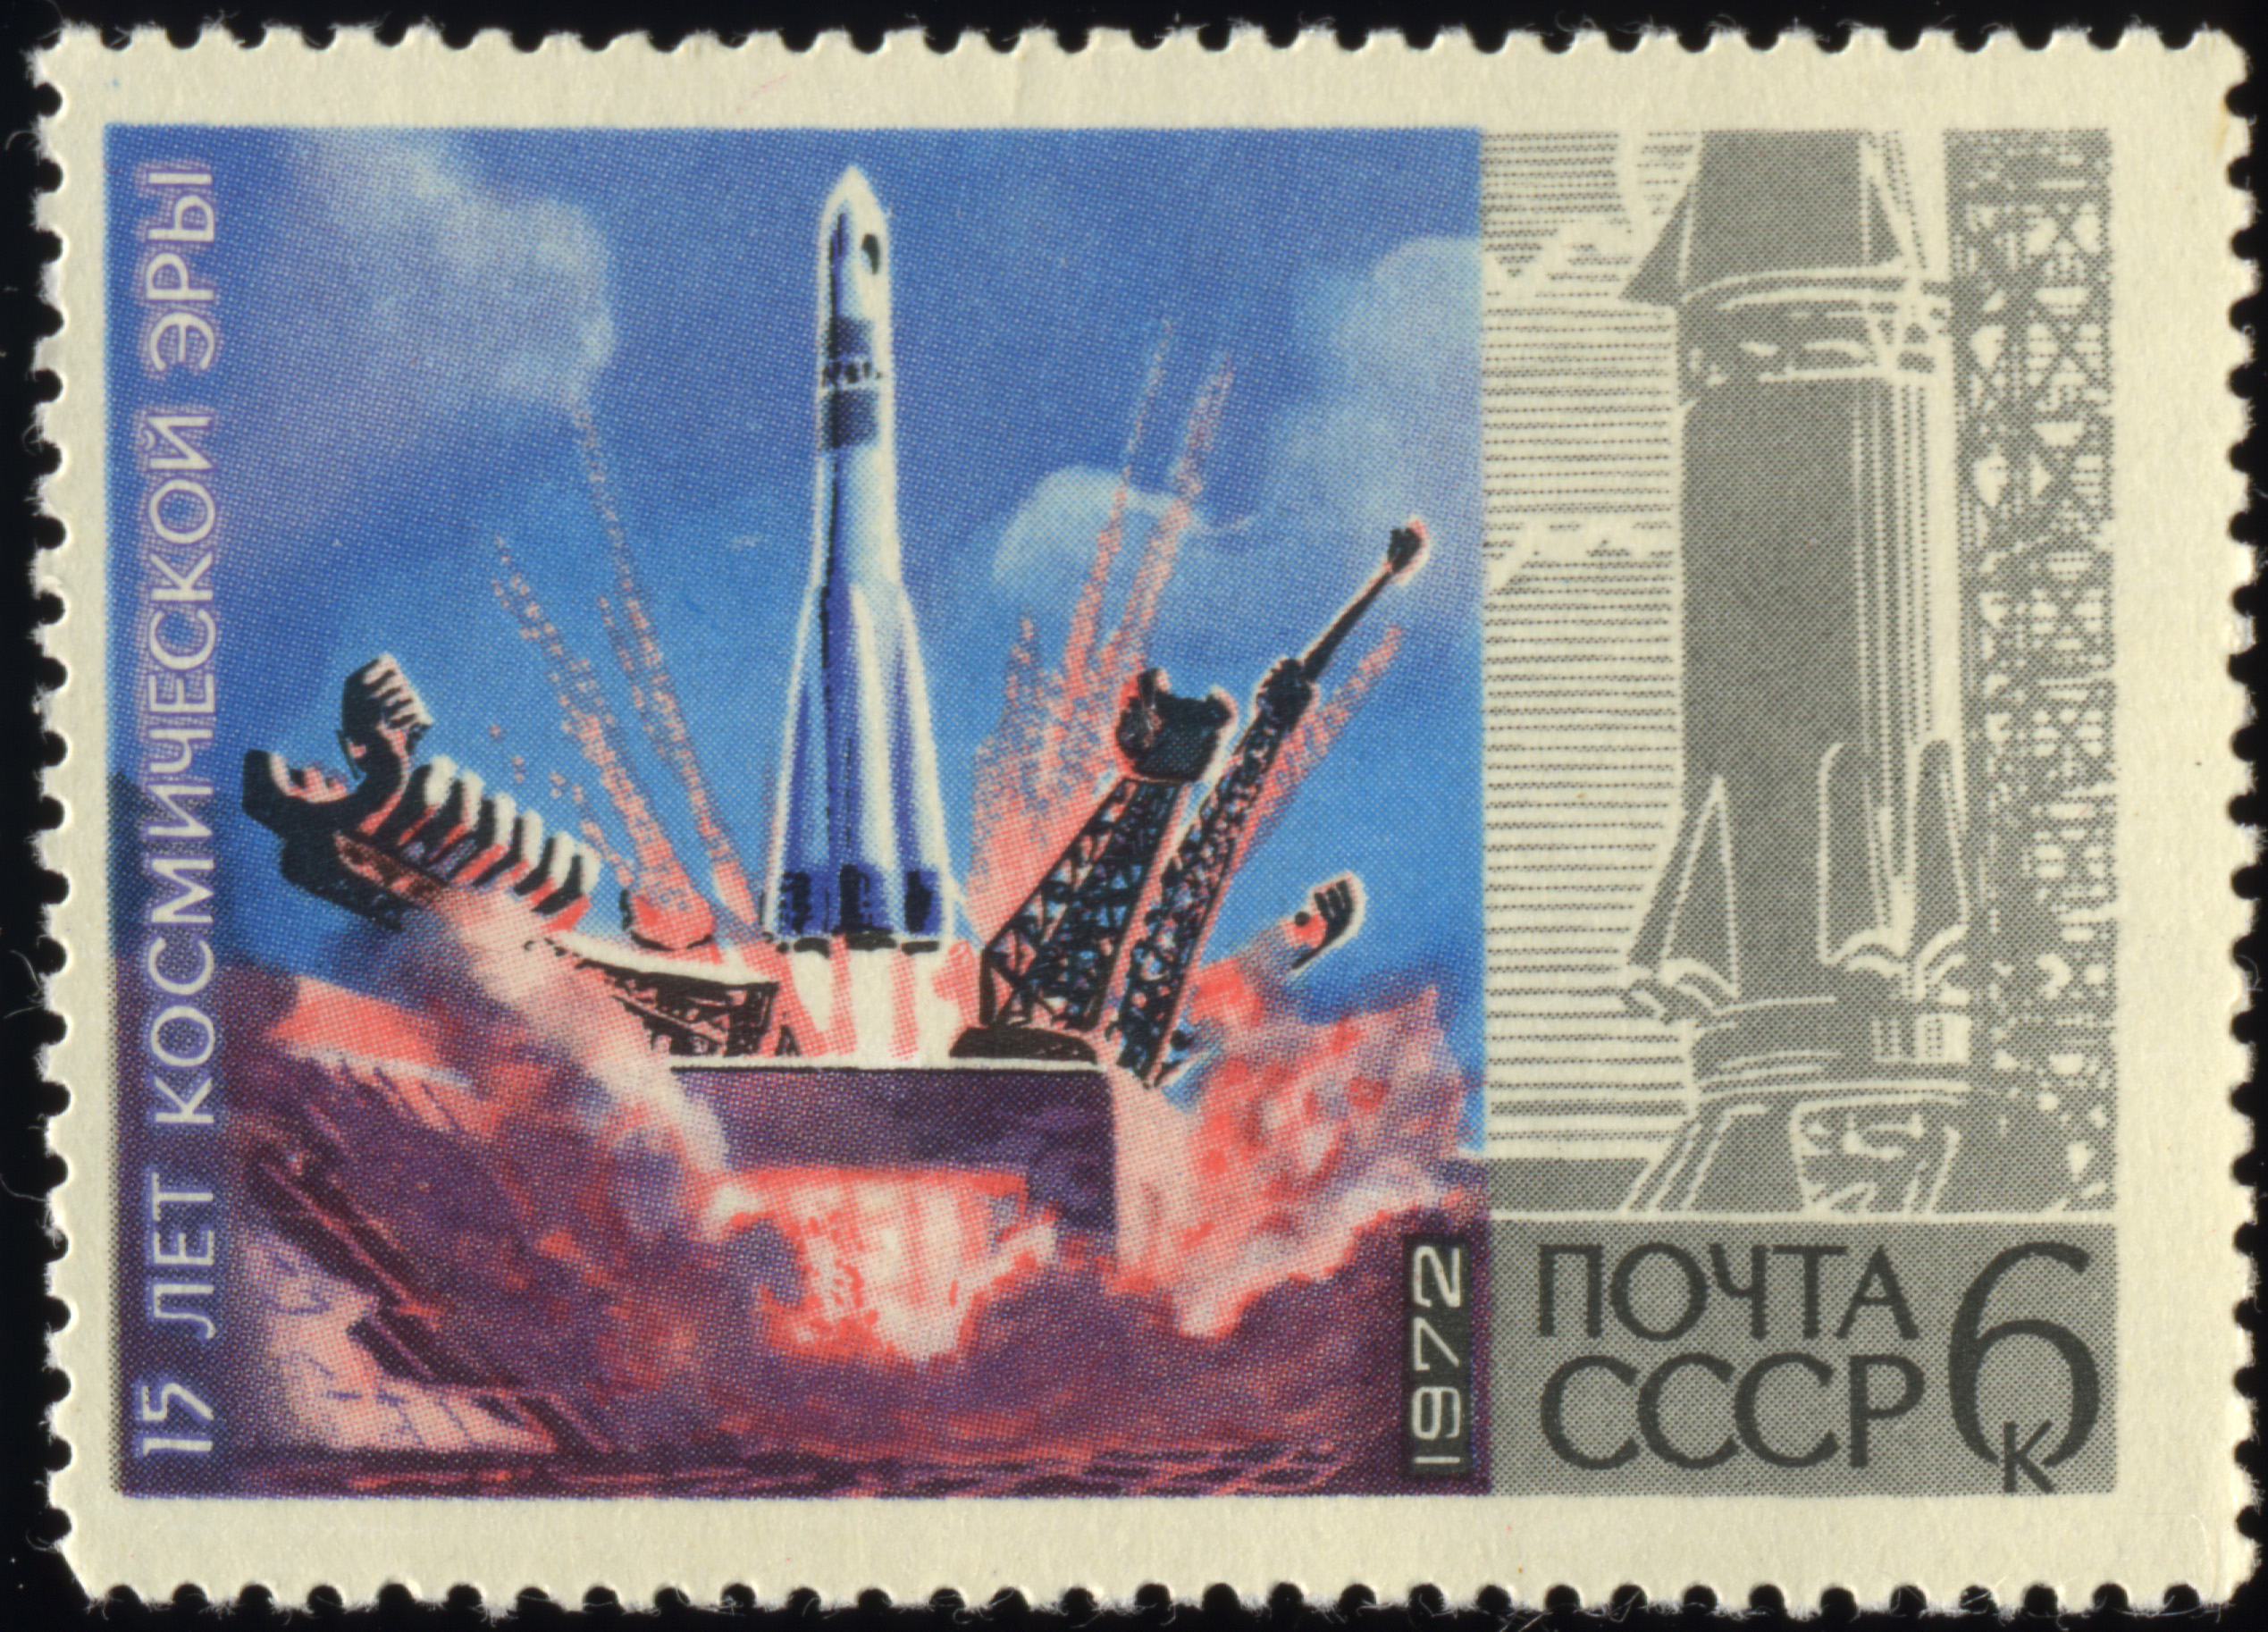 spaceSoviet_Union-1972-Stamp-0.06._15_Years_of_Space_Age._Rockets